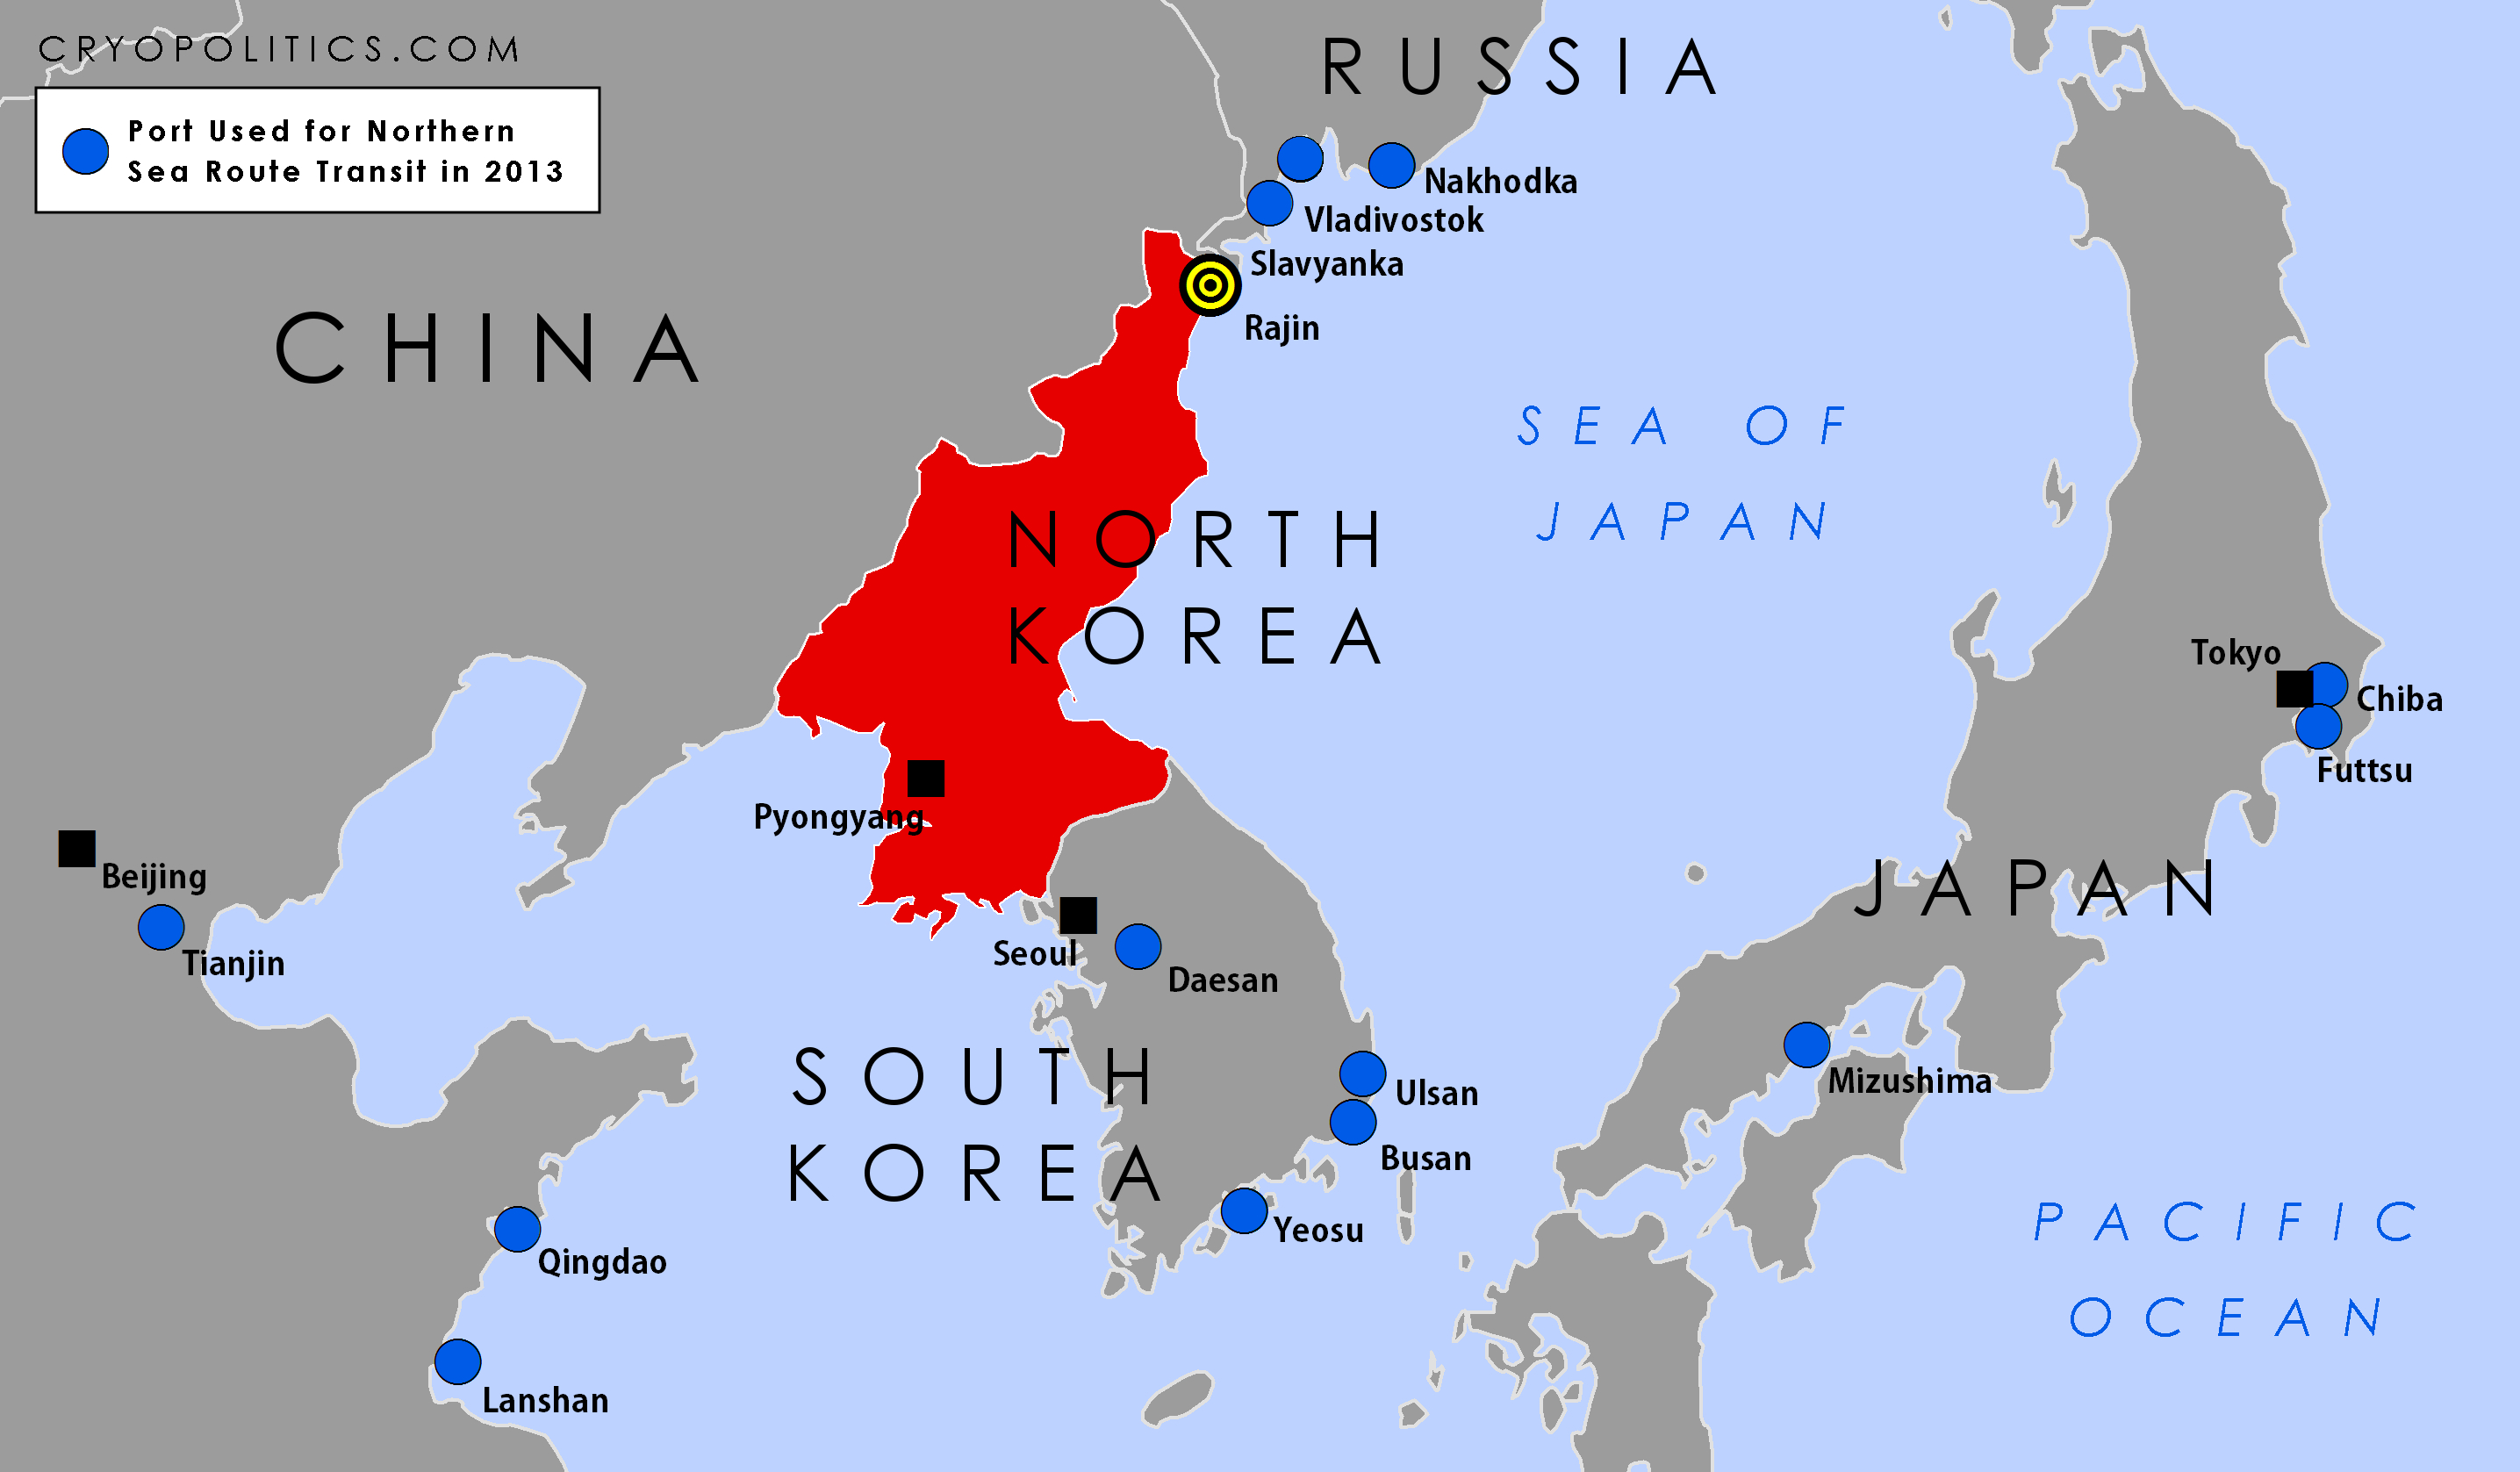 North korea location on the asia map maps cryopolitics gumiabroncs Image collections